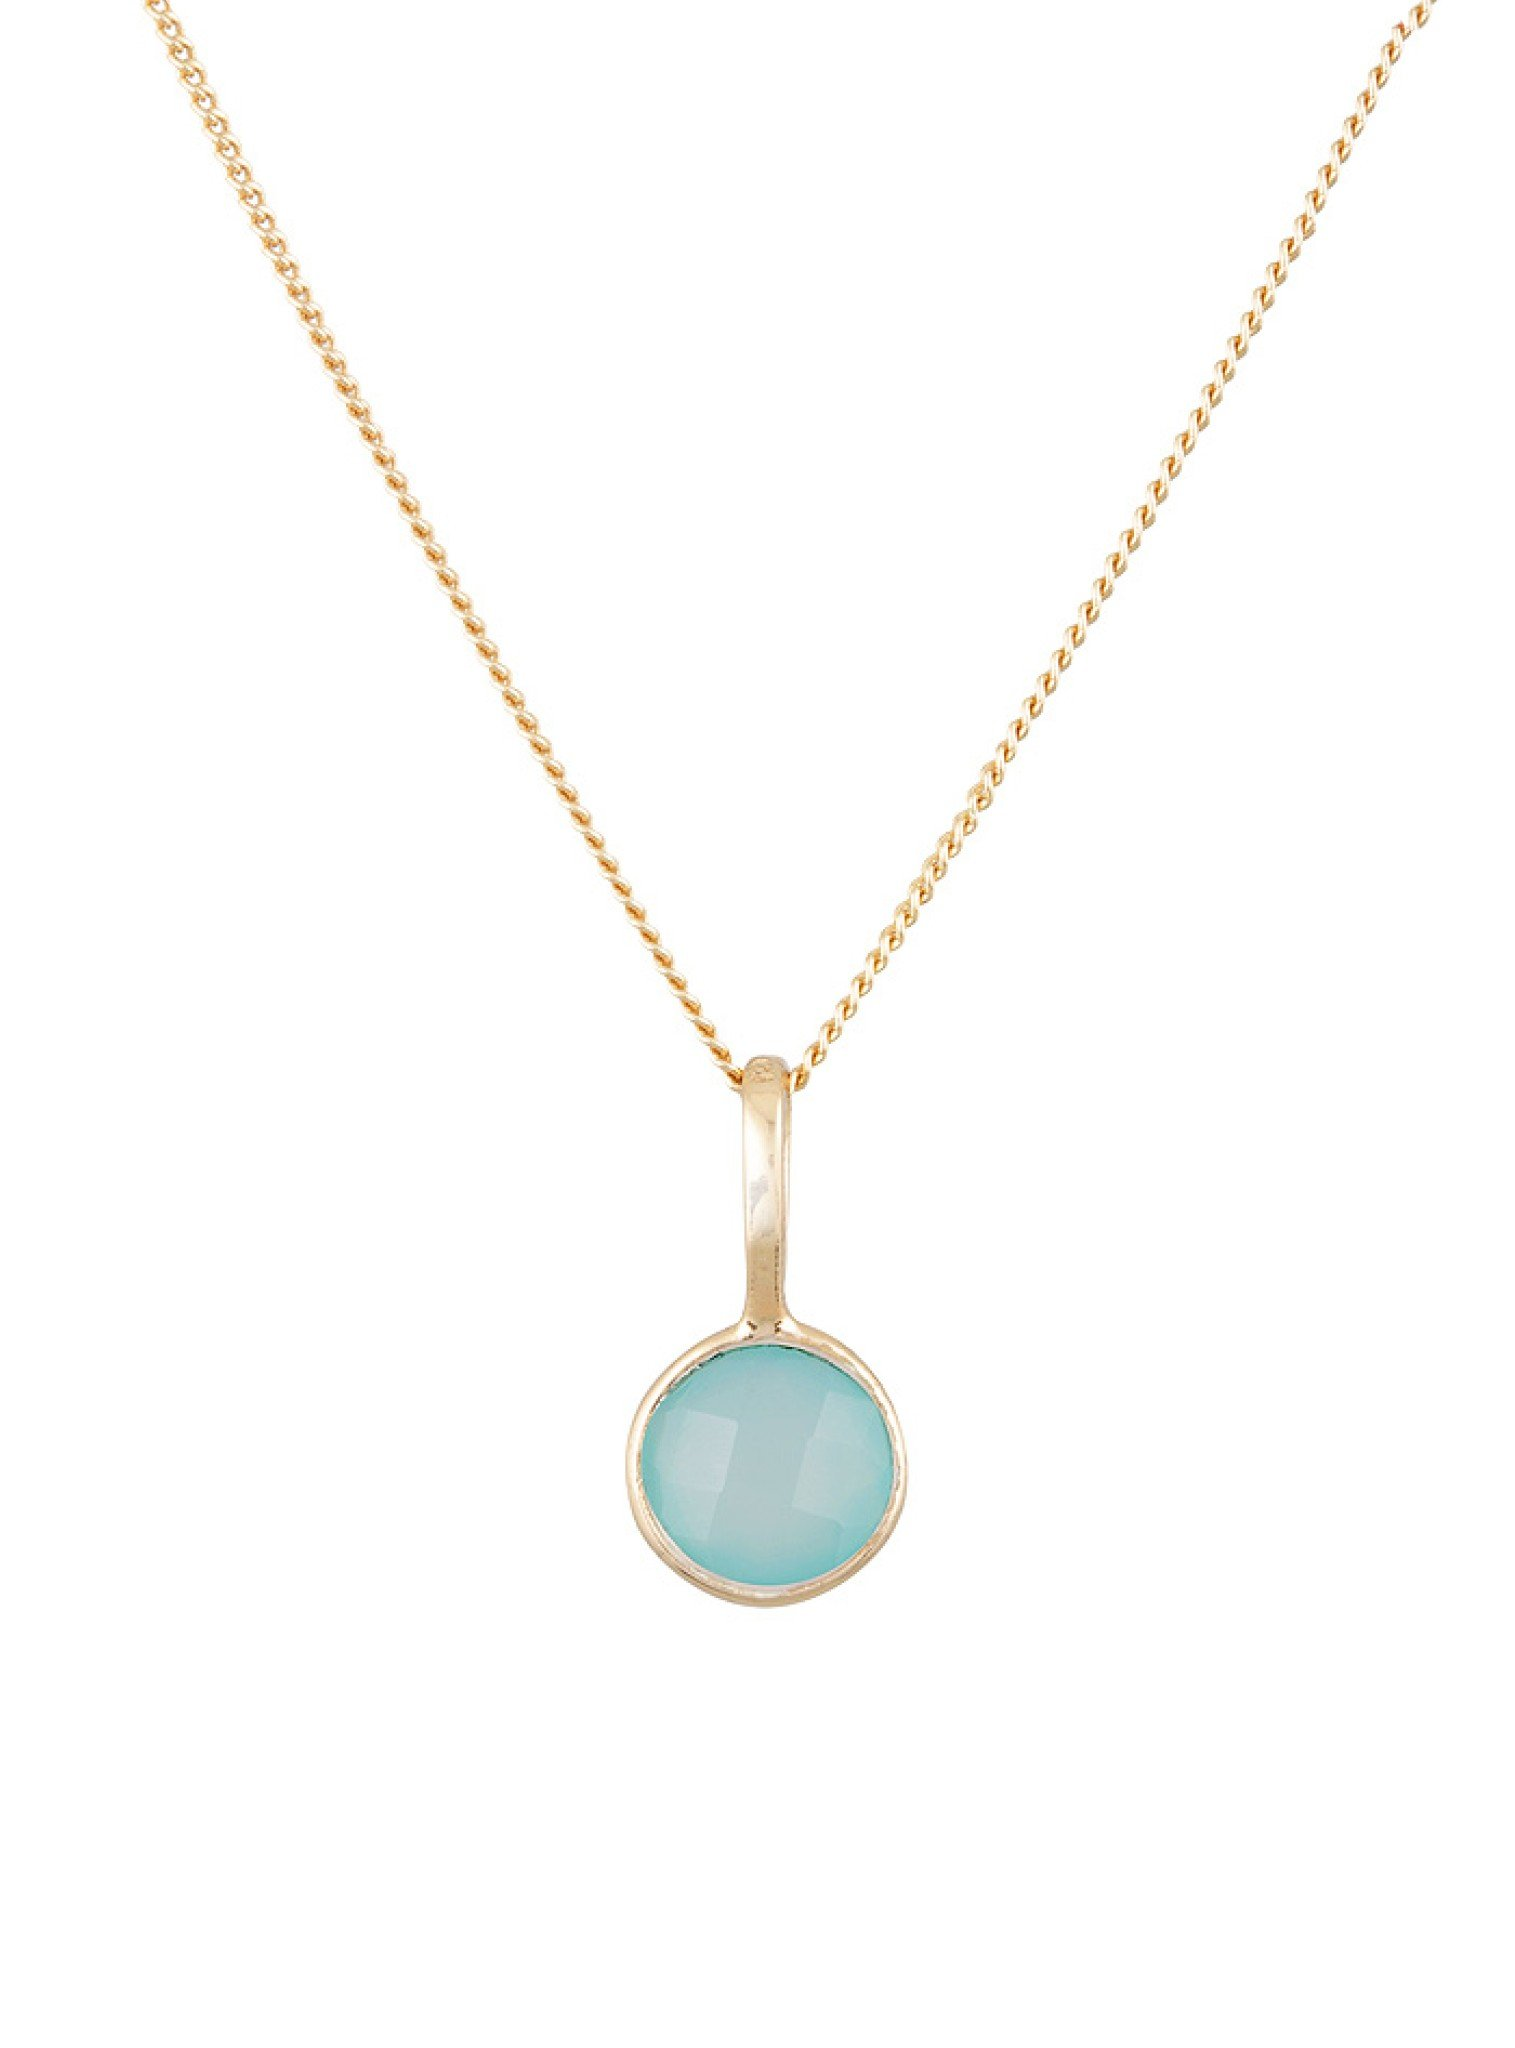 Selene Single Pendant Aqua Chalcedony Necklace in Gold